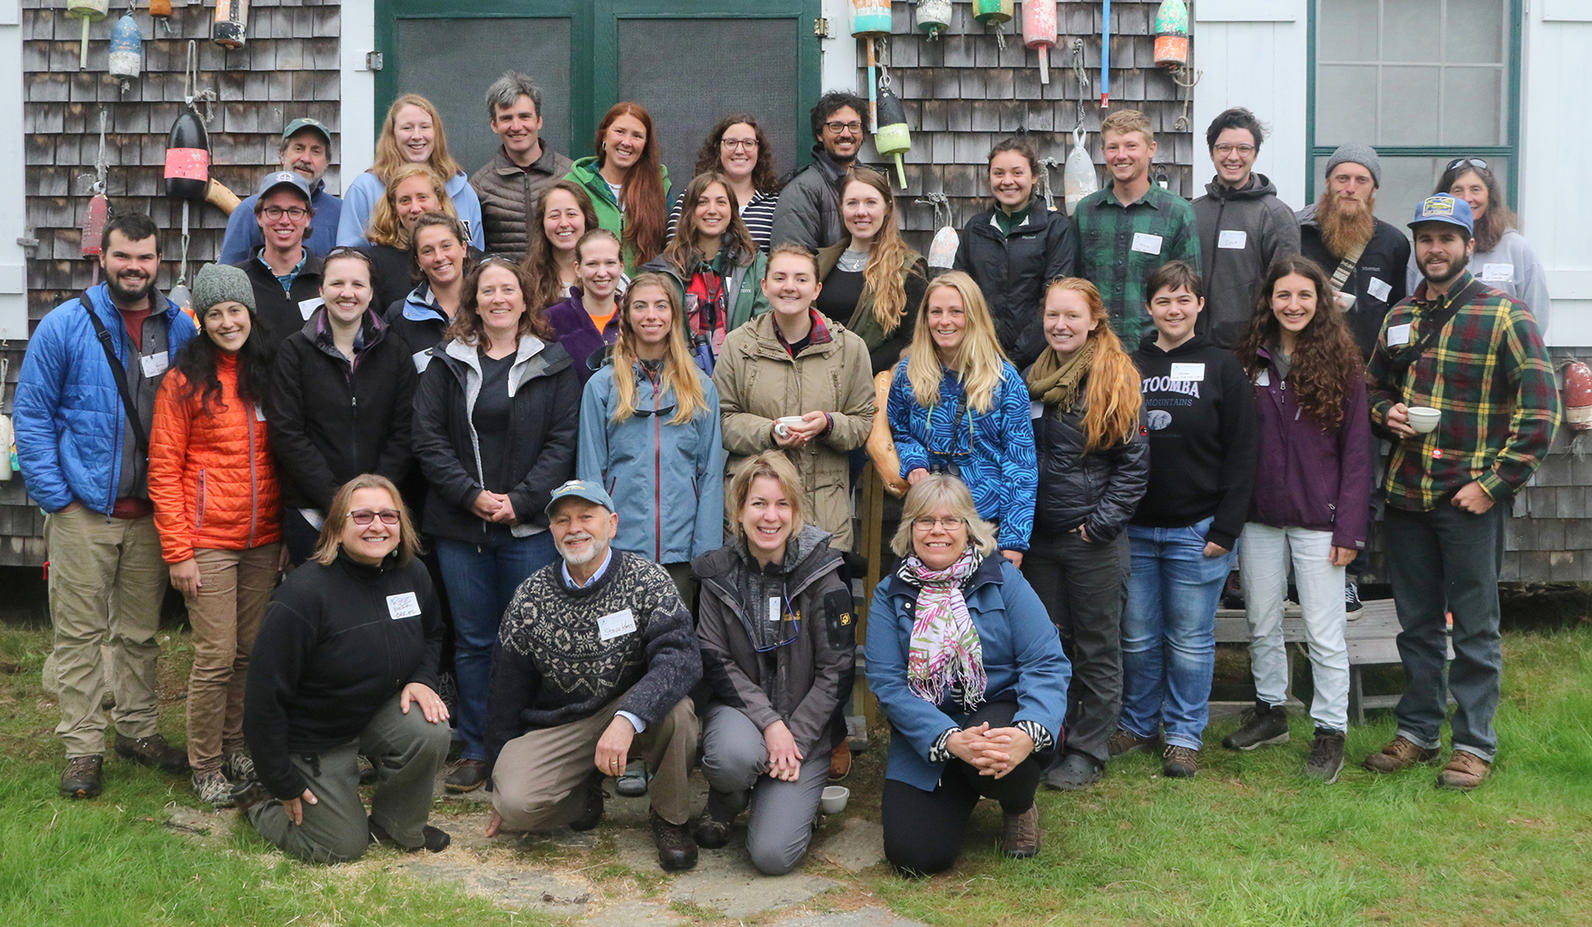 2017 Project Puffin Summer Staff